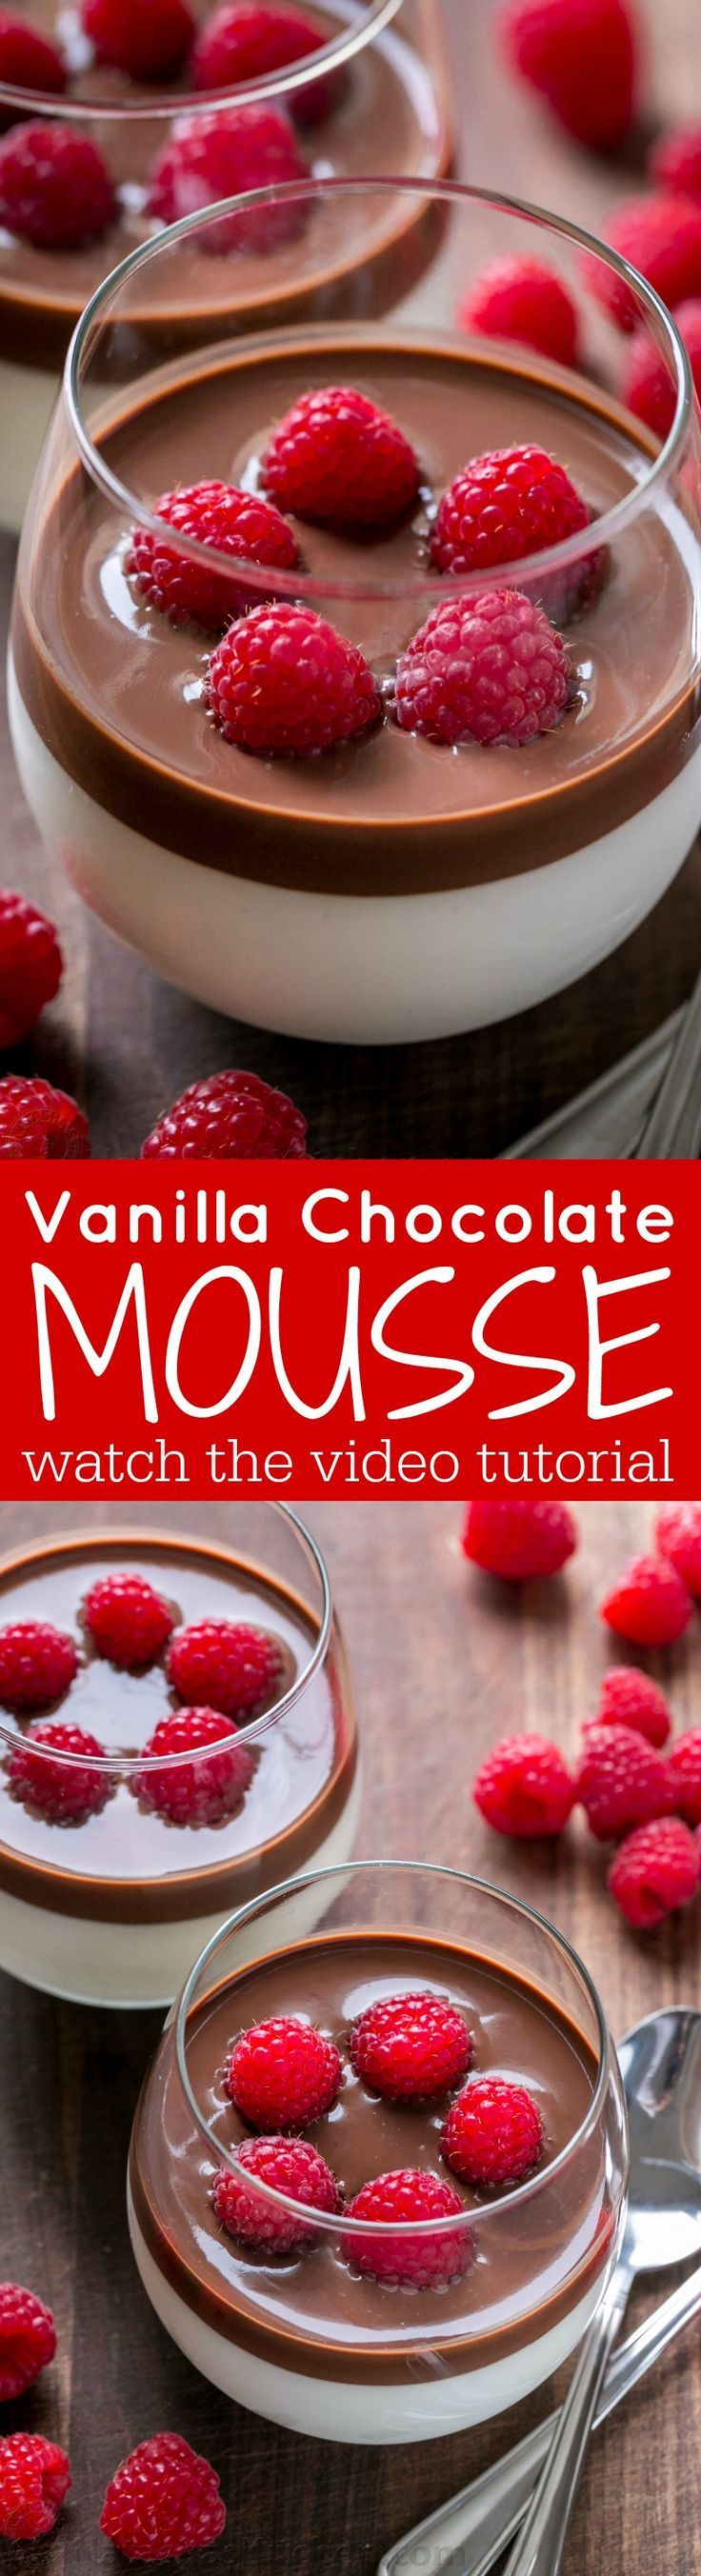 This Vanilla Mousse is an European dessert with creamy base and silky chocolate topping. An elegant vanilla mousse recipe that's surprisingly easy (VIDEO)   http://natashaskitchen.com